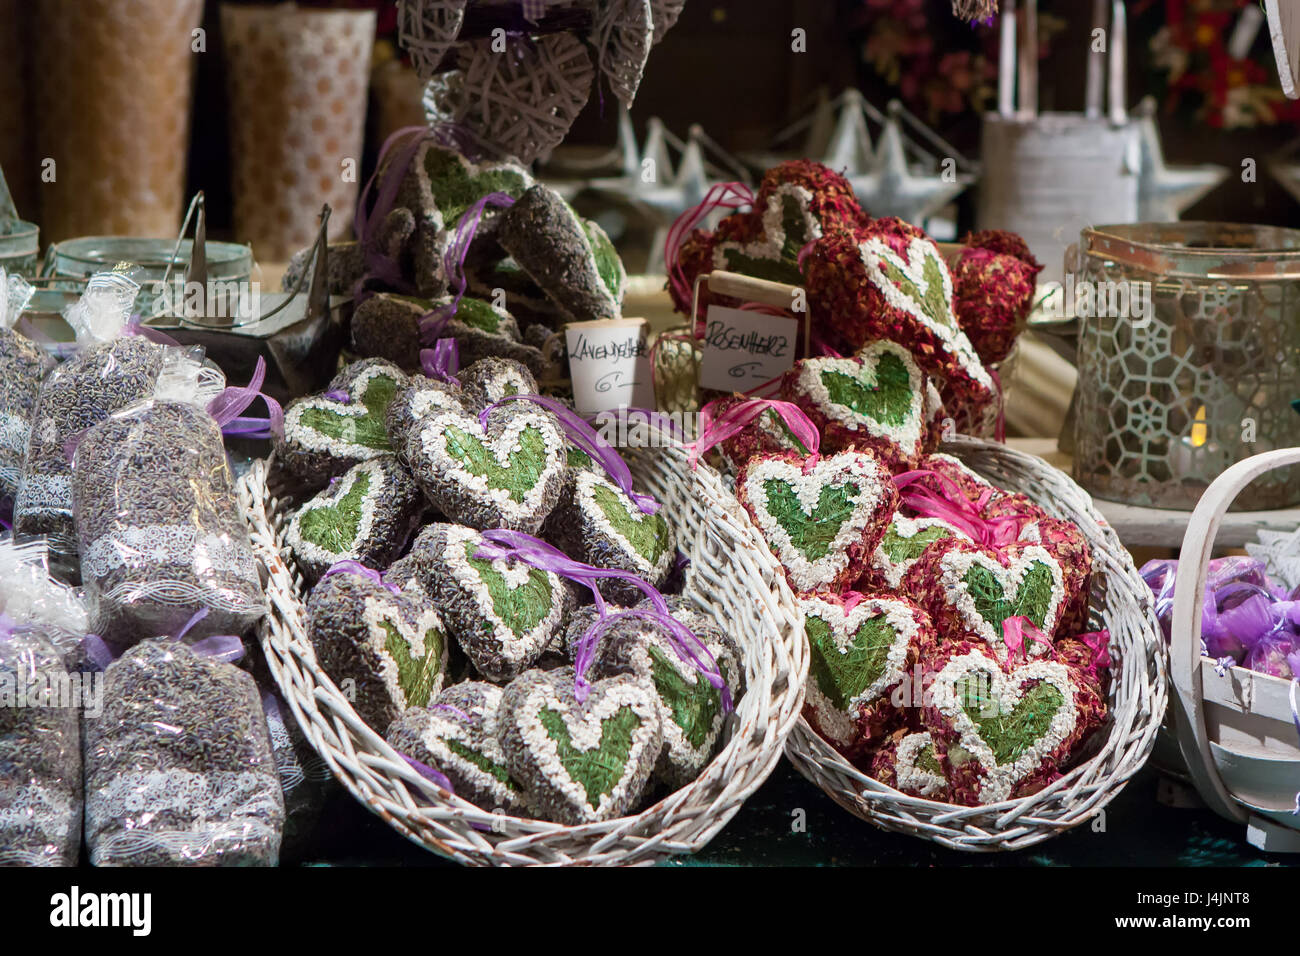 Lavender christmas ornaments - Stuttgart Germany December 3 2016 Heart Shaped Christmas Ornaments Filled With Lavender And Rose Petals In A Kiosk At Christmas Market Weihnacht